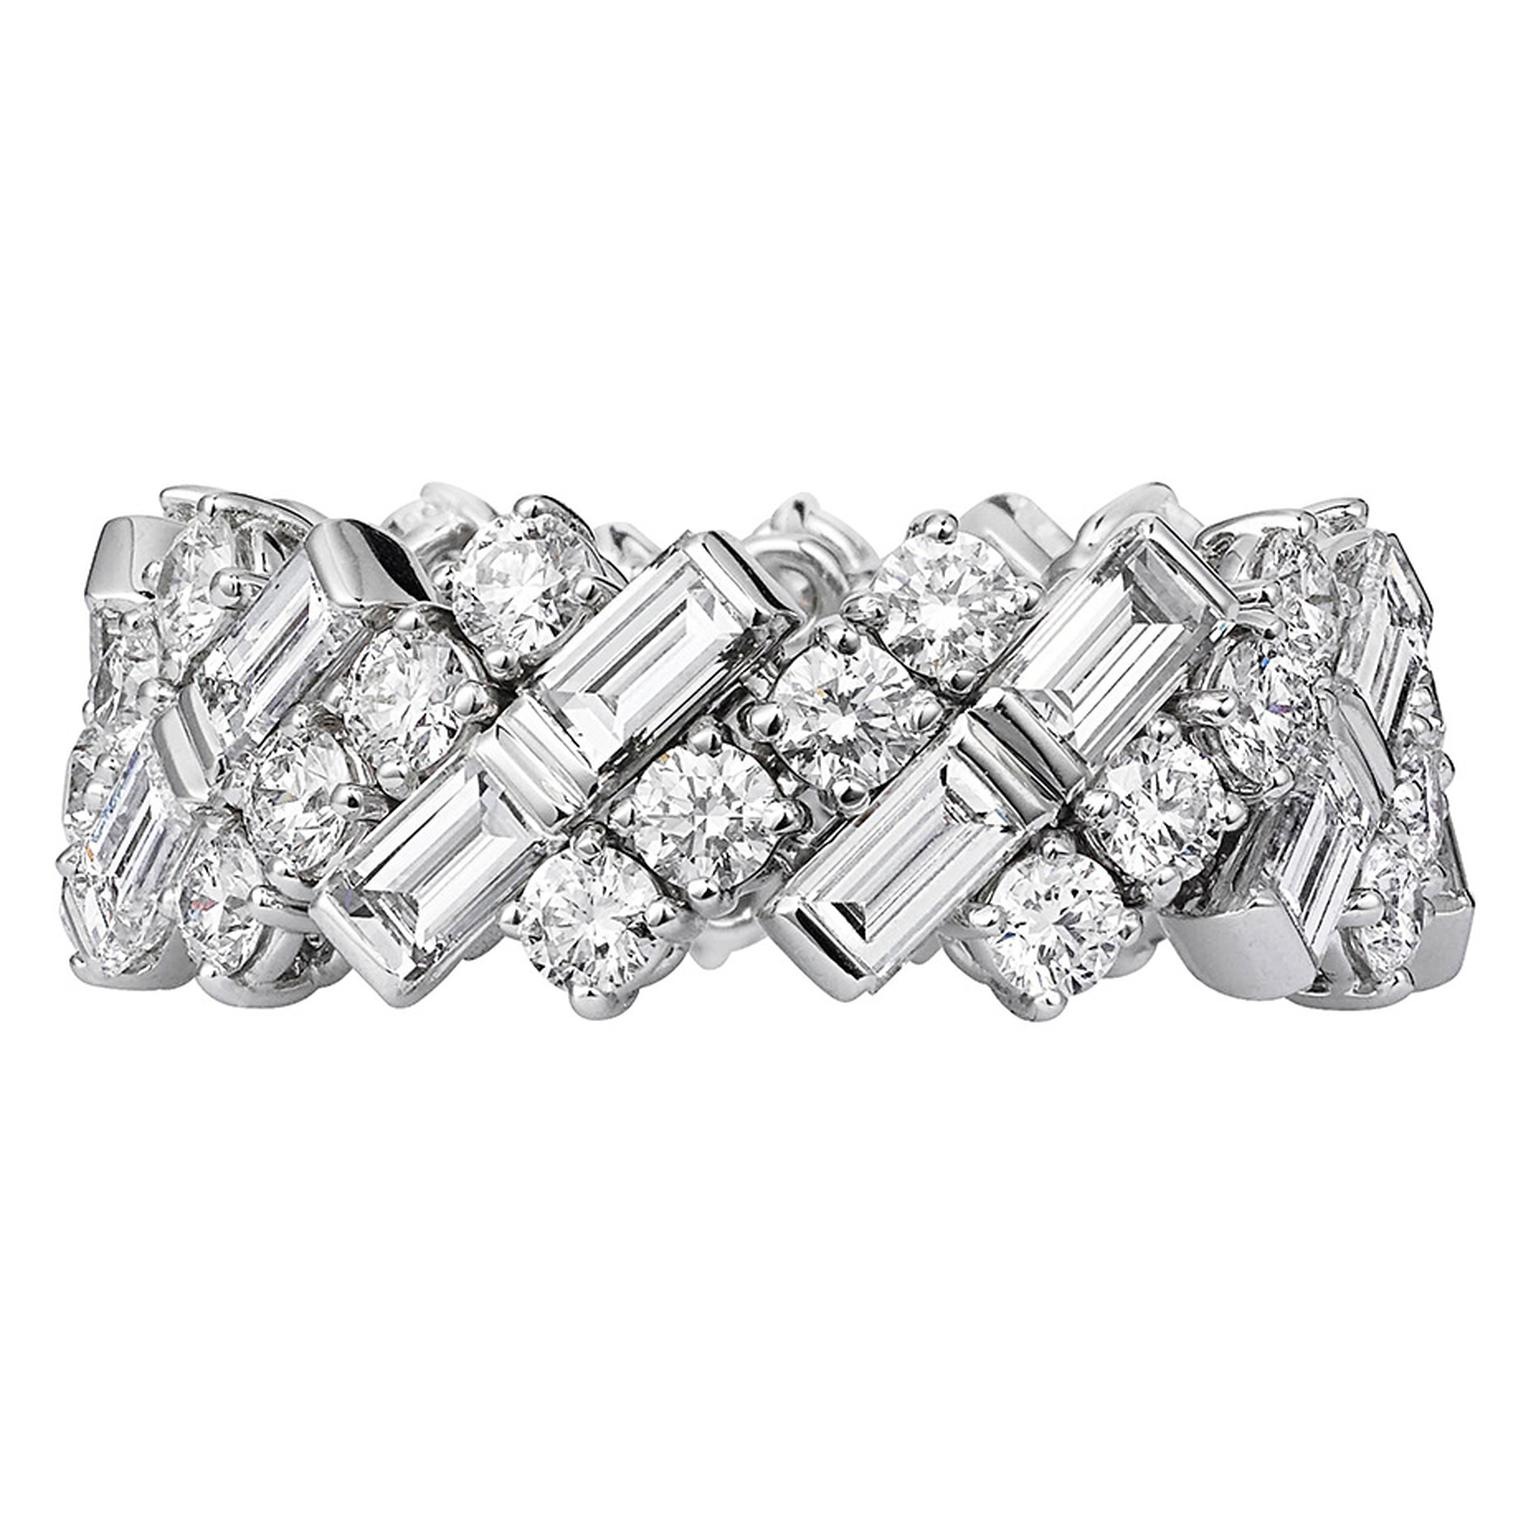 creative collection wedding band in white gold and diamonds